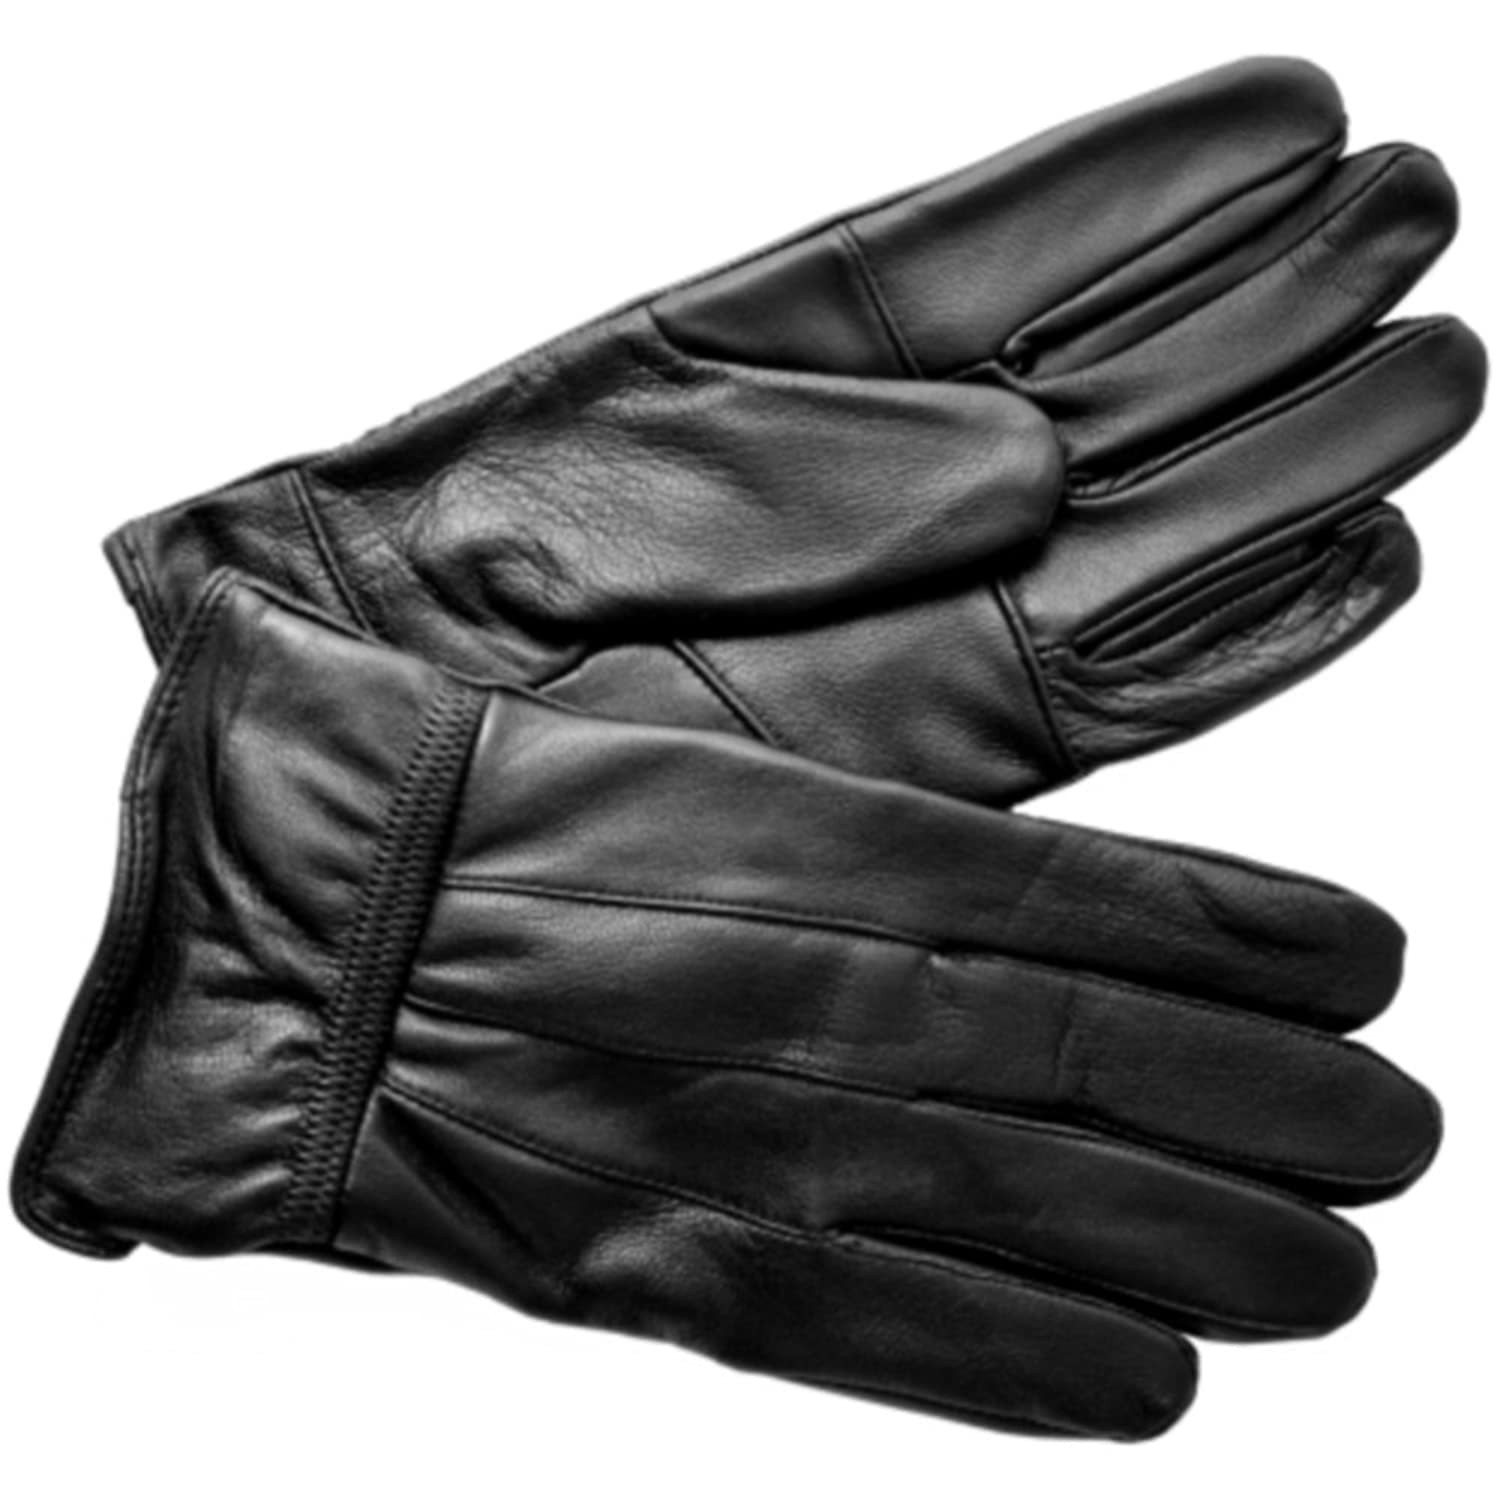 Mens leather gloves black friday - Leather Emporium Mens New Black Soft Leather Driving Gloves